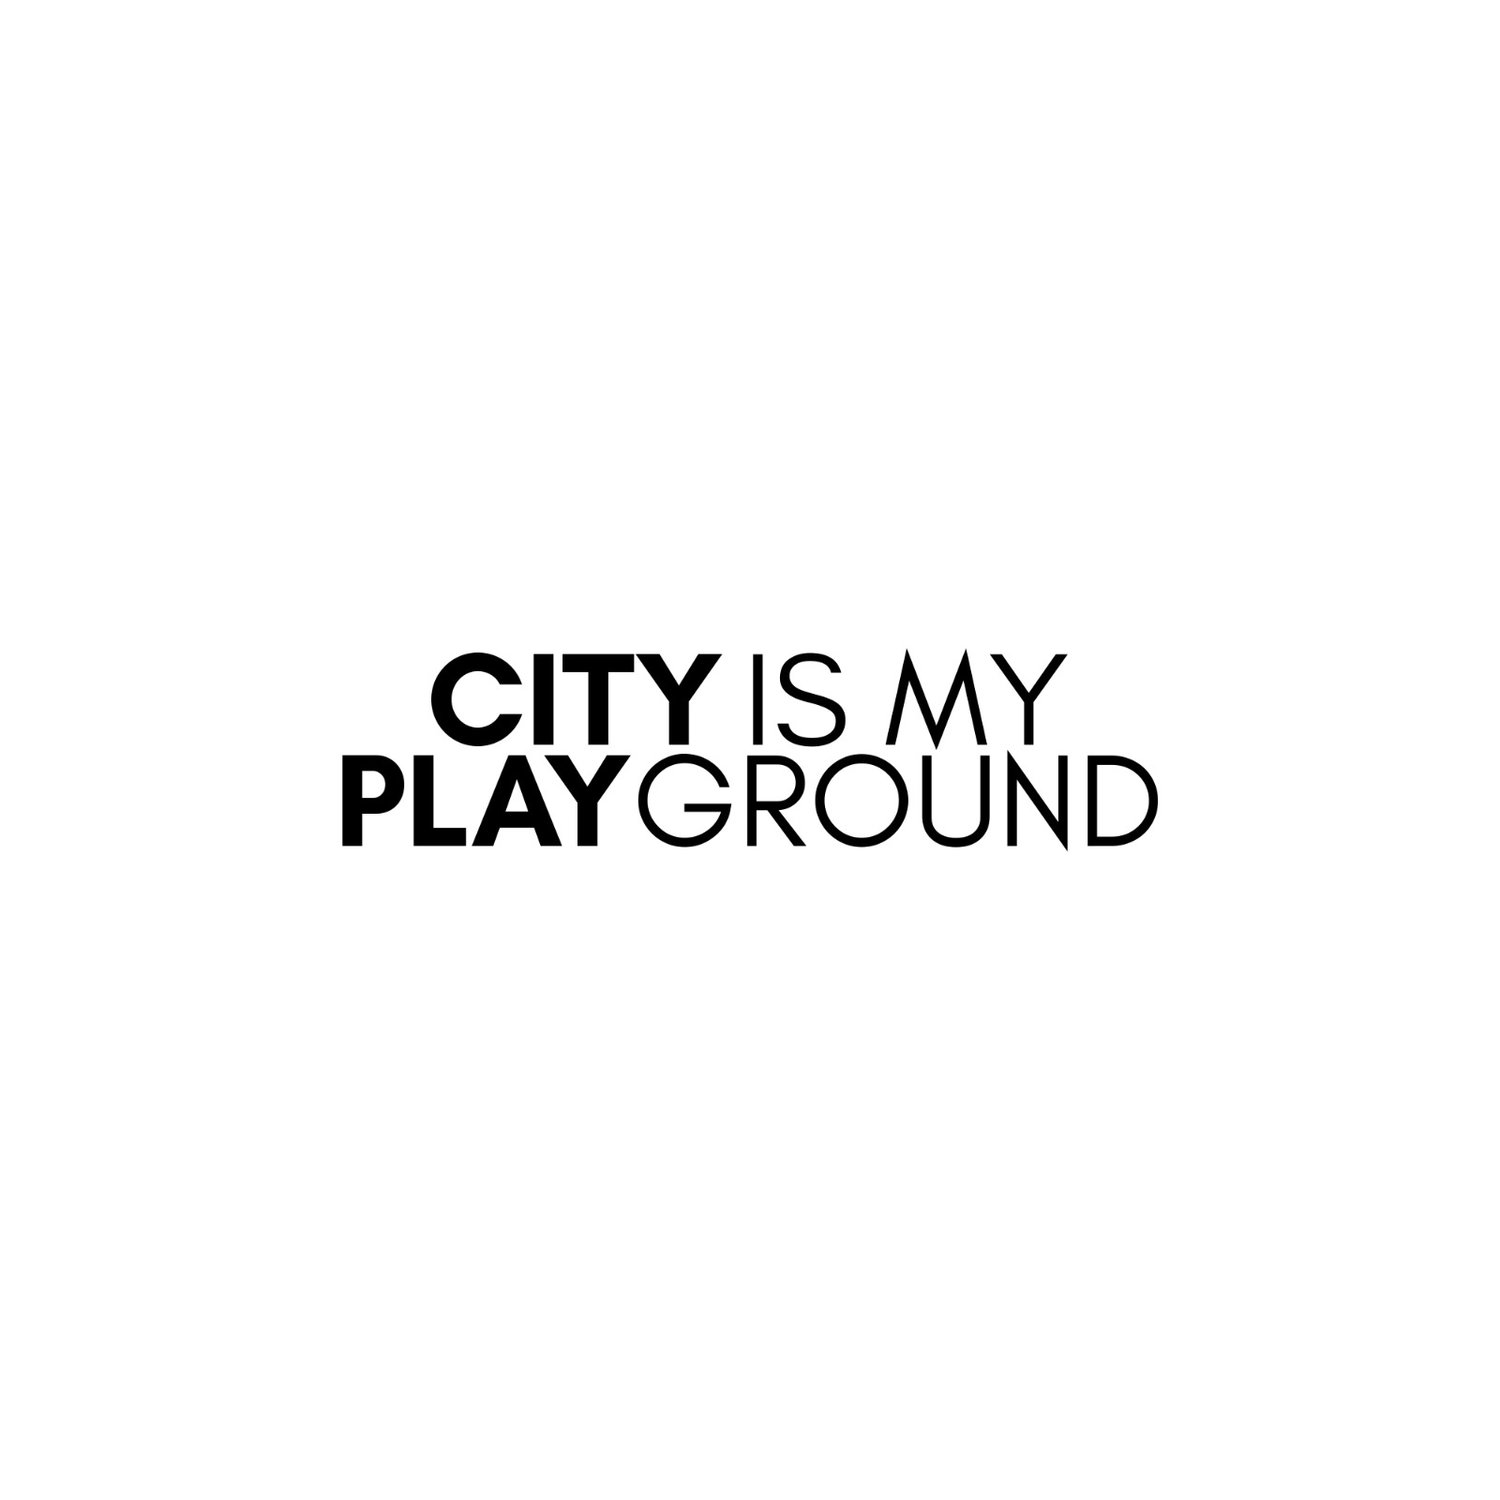 City Is My Playground